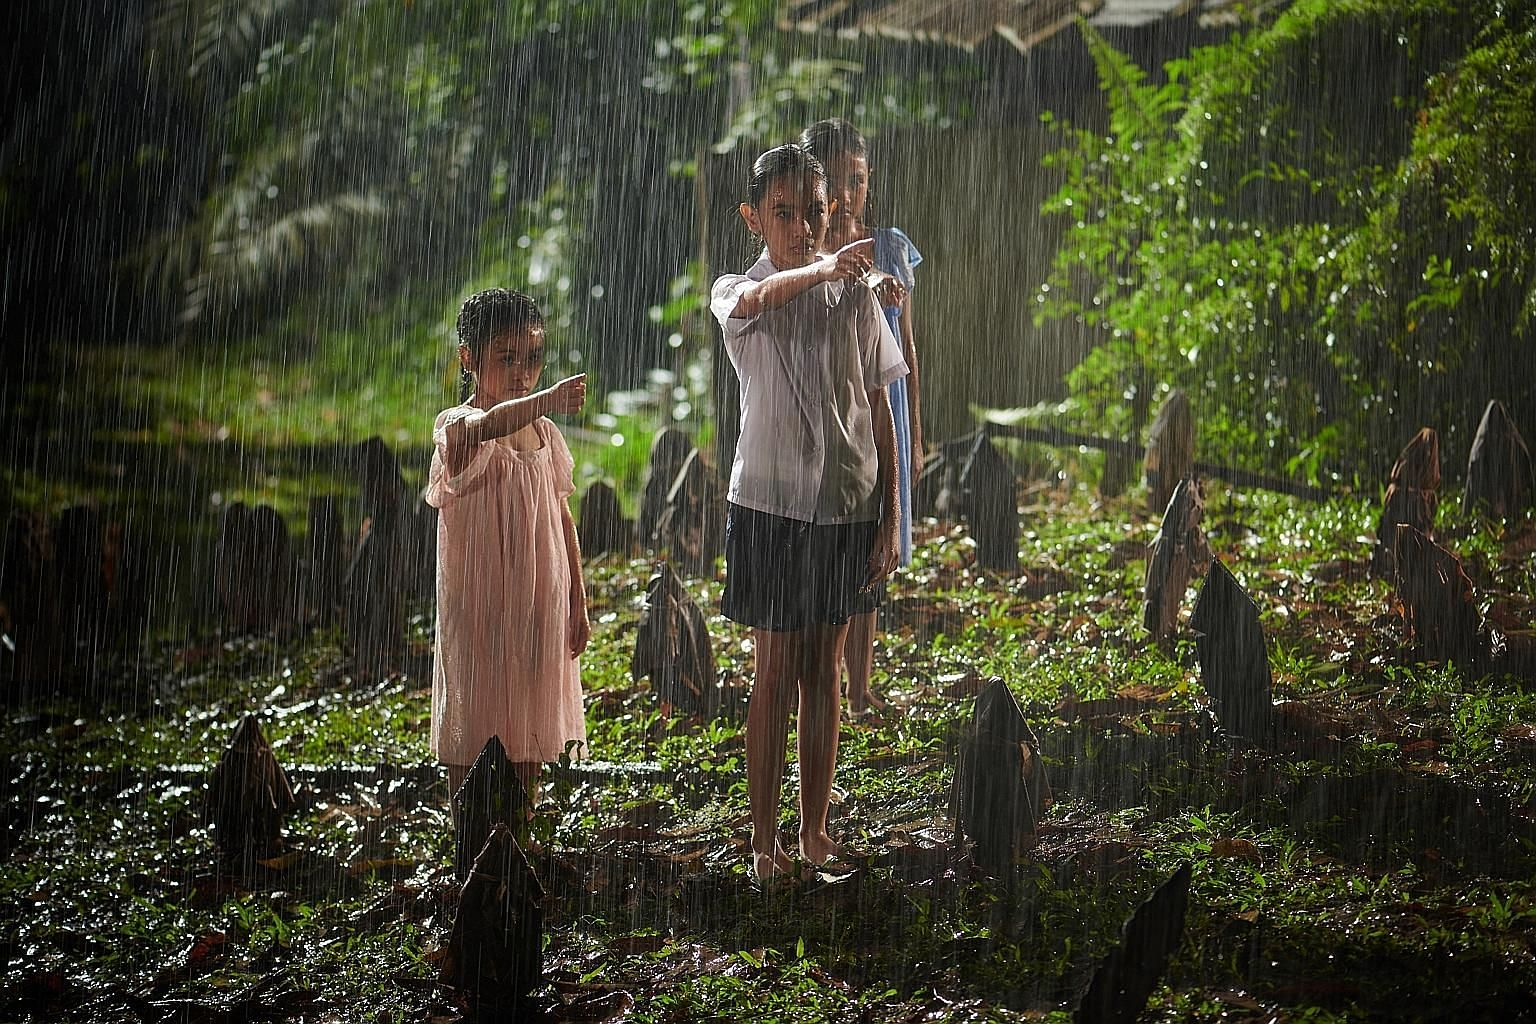 """Ibu, or """"mother"""" in Malay, is a nod to Malay folk tales and classic films from the 1950s, but director M. Raihan Halim says his take will cover """"ideas not yet explored""""."""